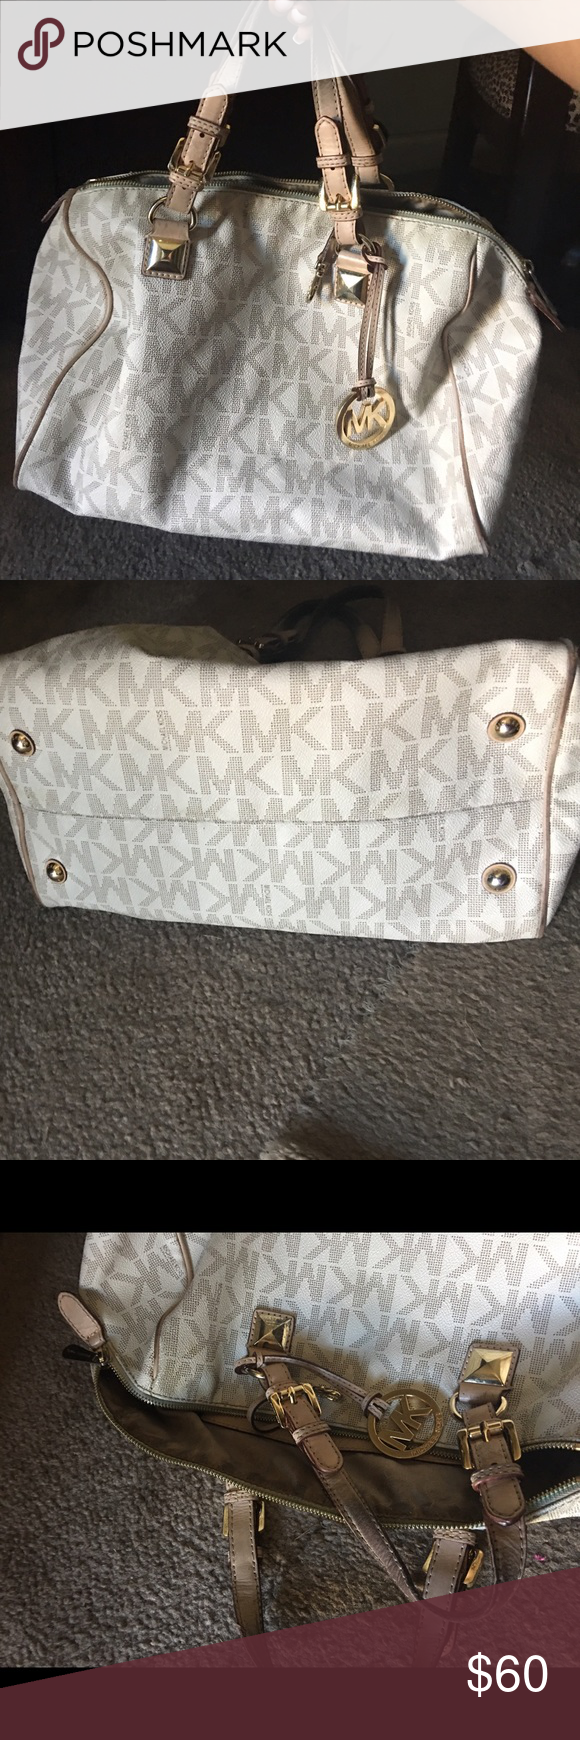 Mk handbag Was sent back good condition things that are wrong r n a pic handles need to b cleaned up cause of oils and zipper line can b cleaned as well  other than that nice MICHAEL Michael Kors Bags Satchels